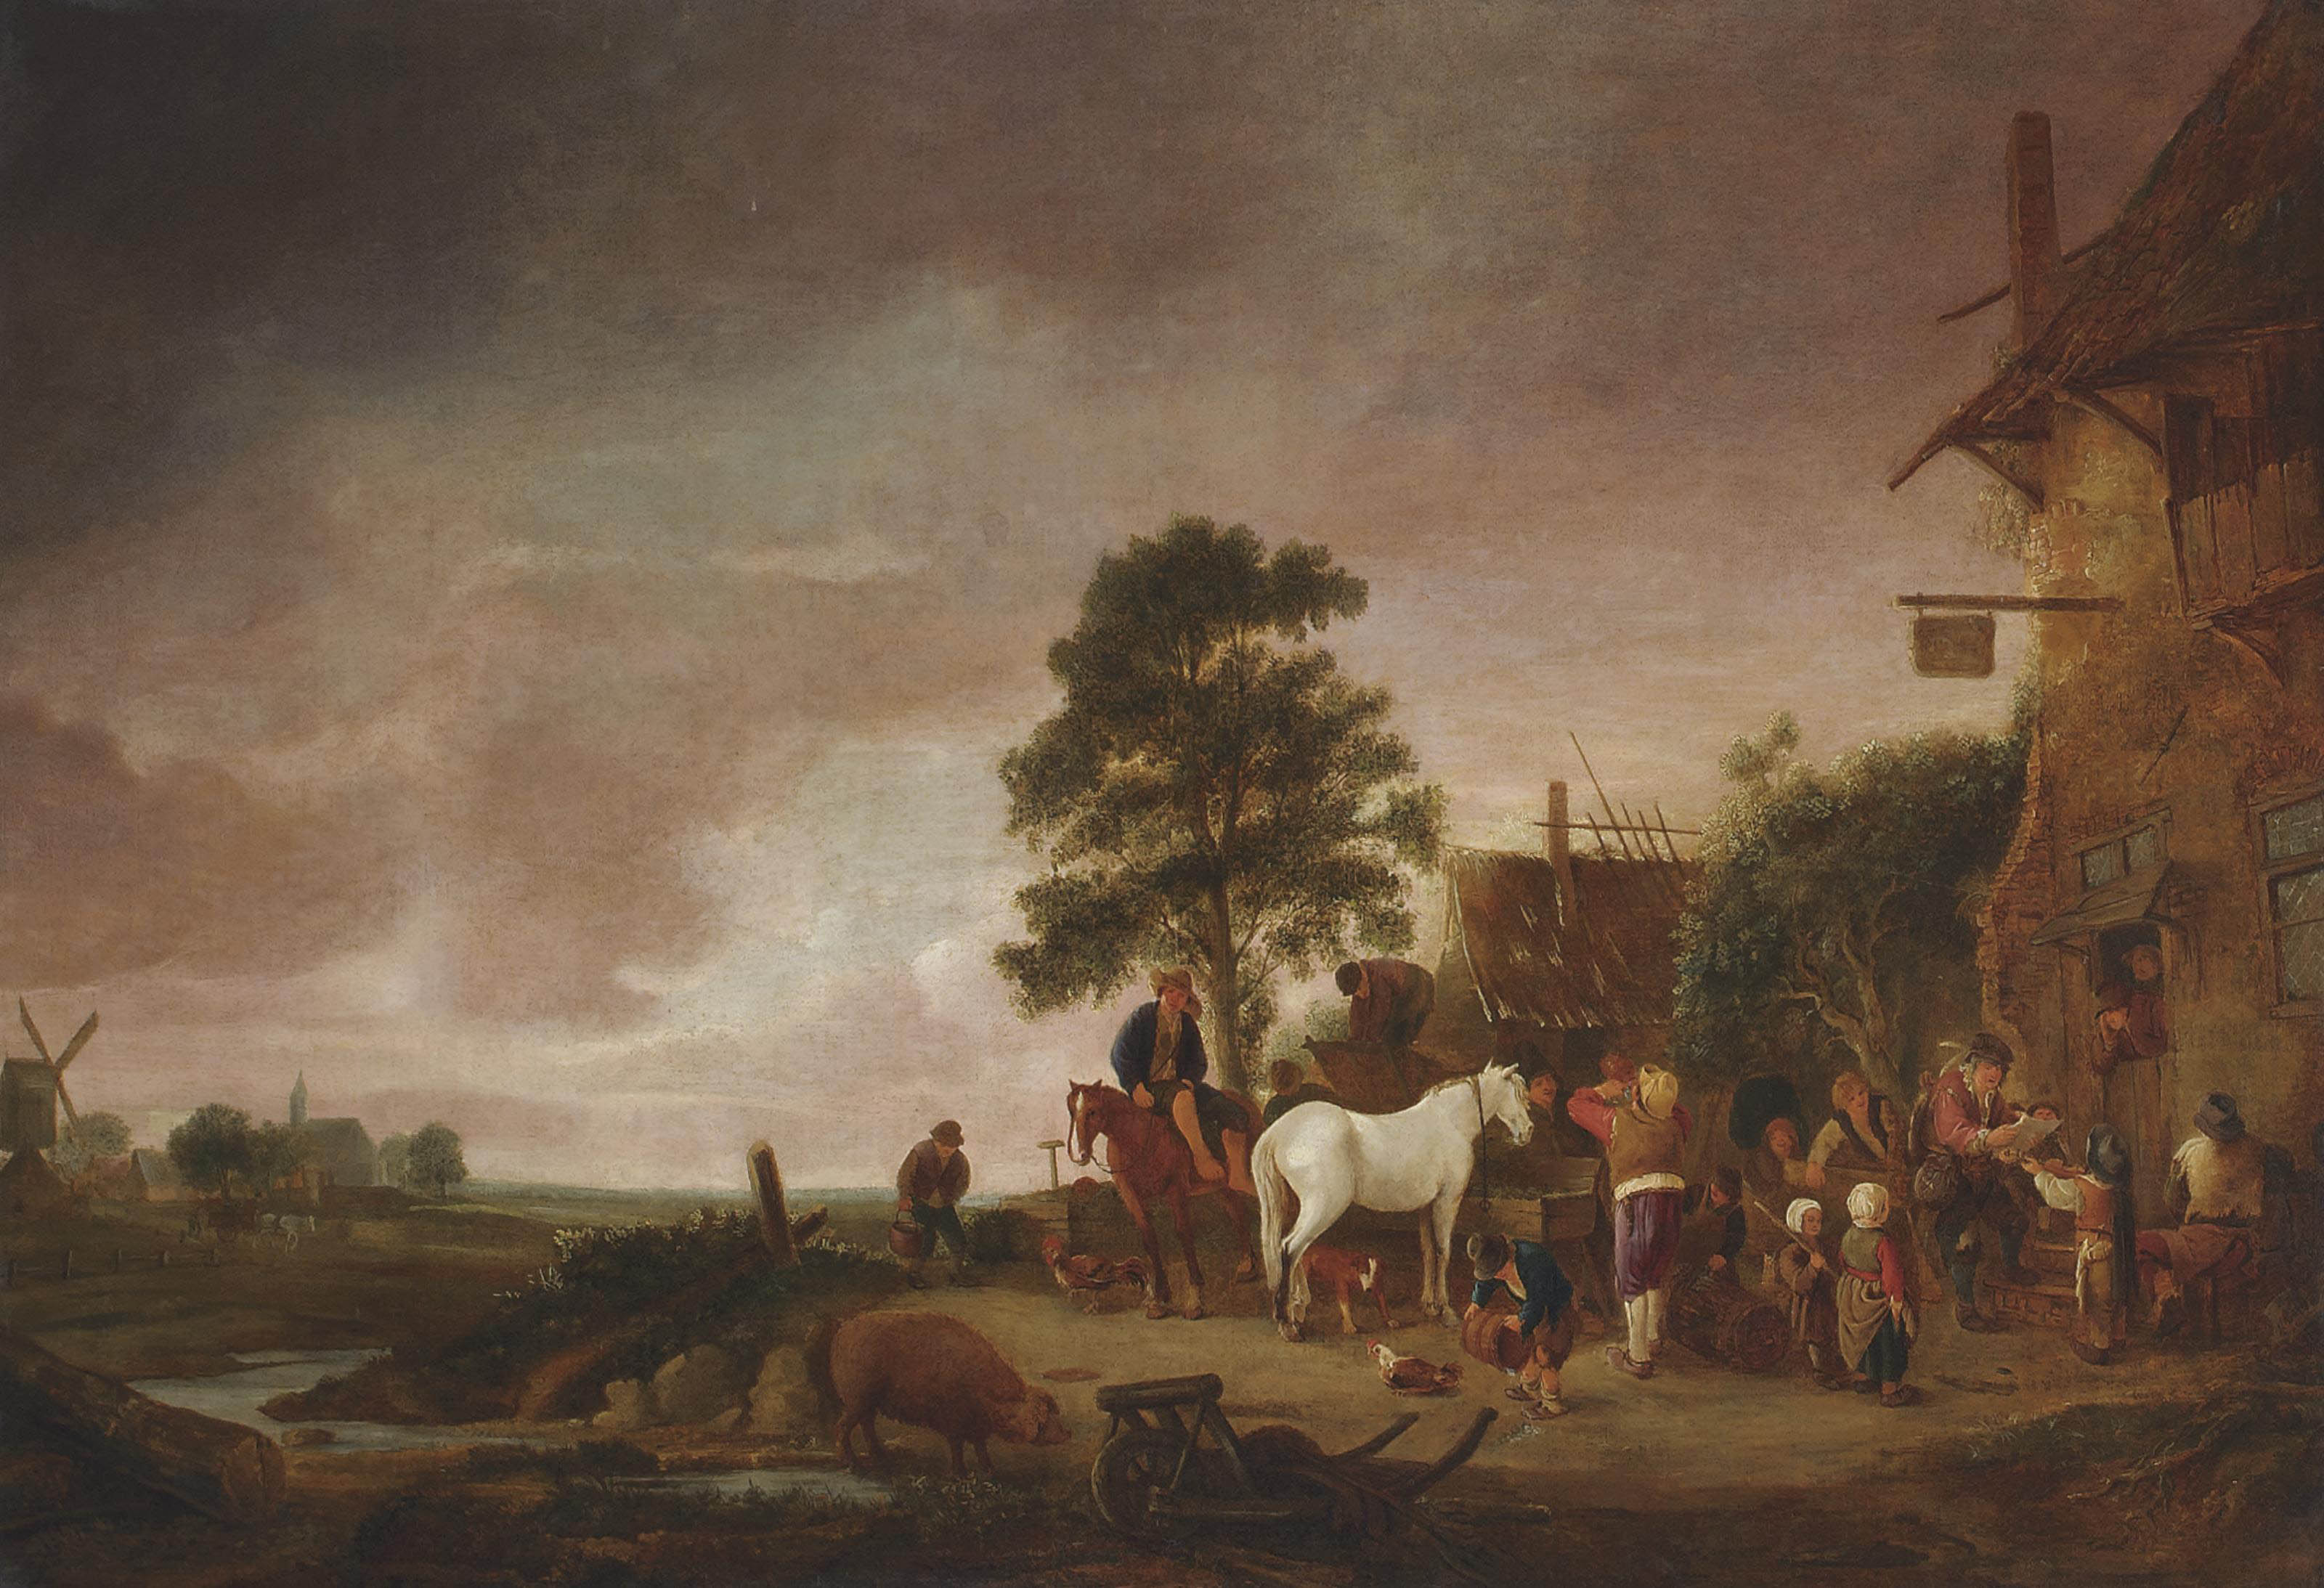 A village scene outside a tavern, with figures conversing, playing music and feeding their horses